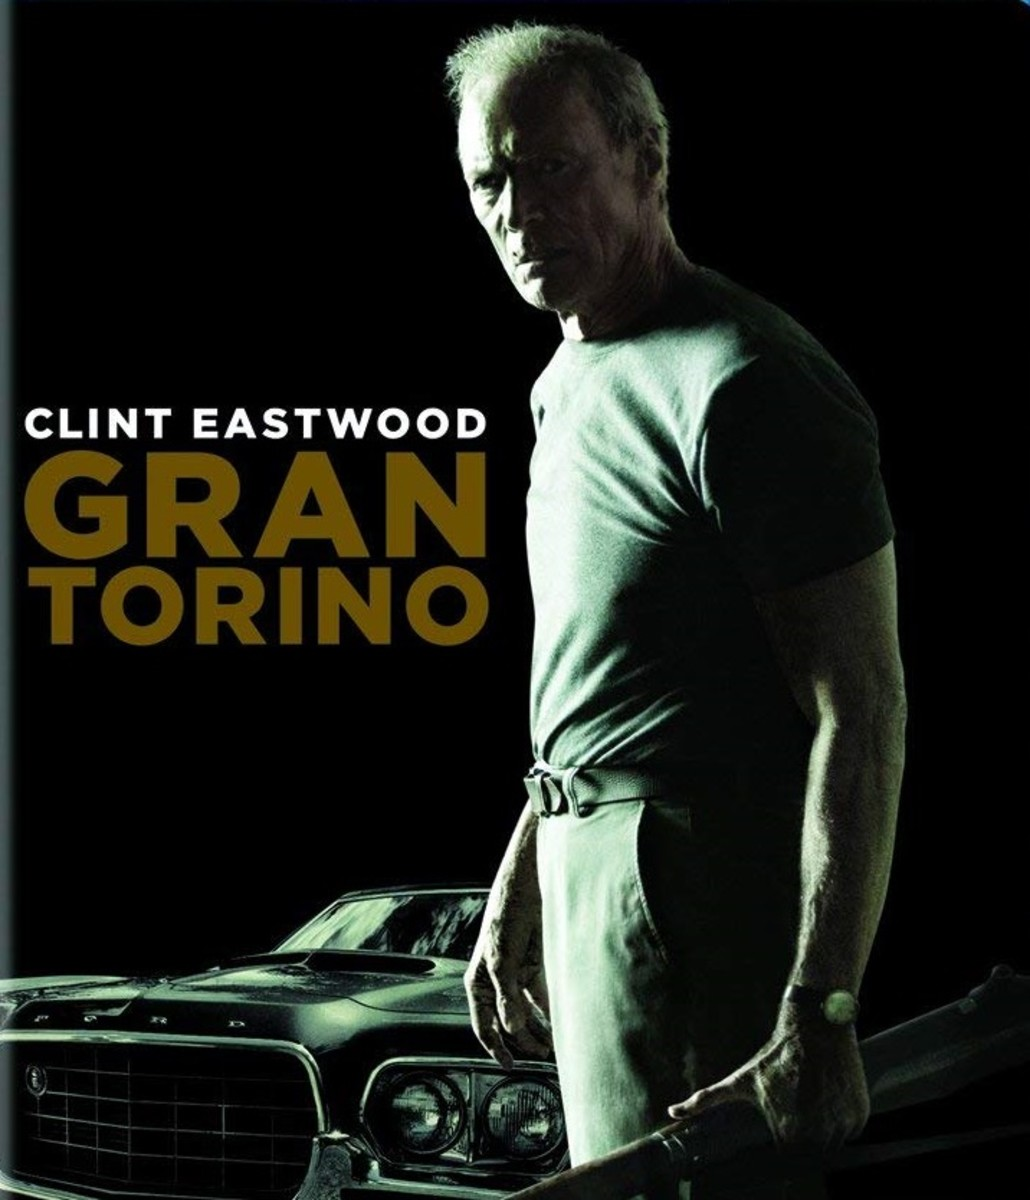 Clint Eastwood Gran Torino Blu-ray Movie Review & Trailer